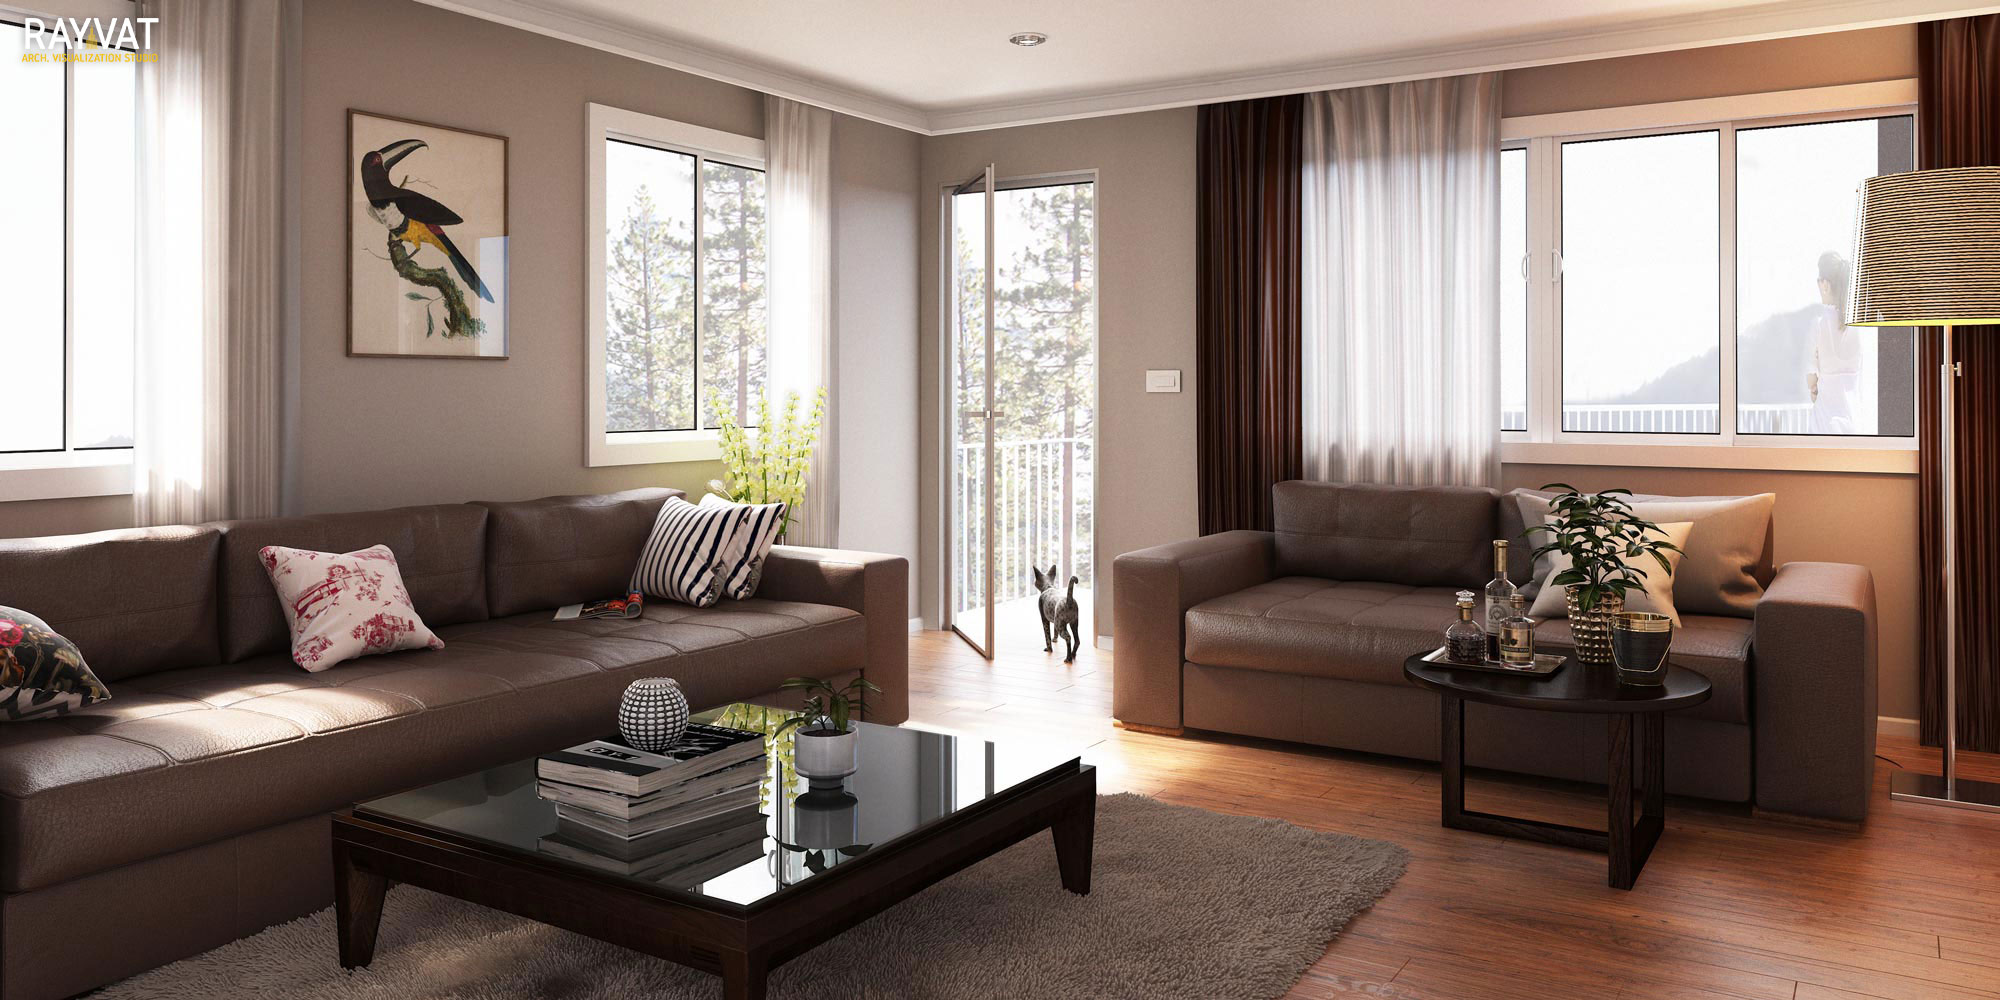 Luxurious Room Interior Rendering